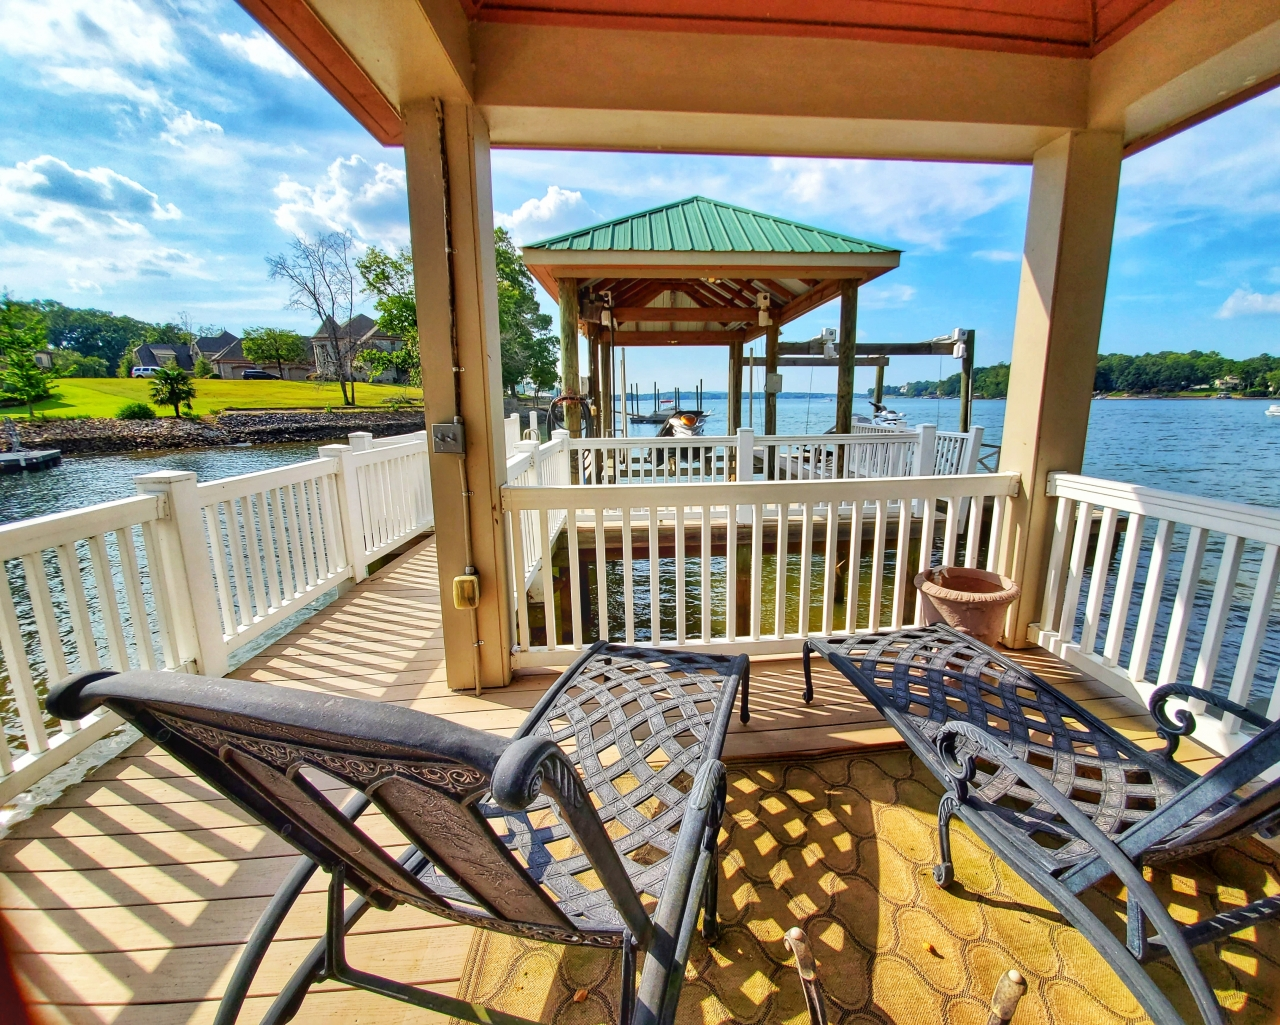 Real Estate 2019-10-01 - Lake Wylie Luxury Waterfront Home